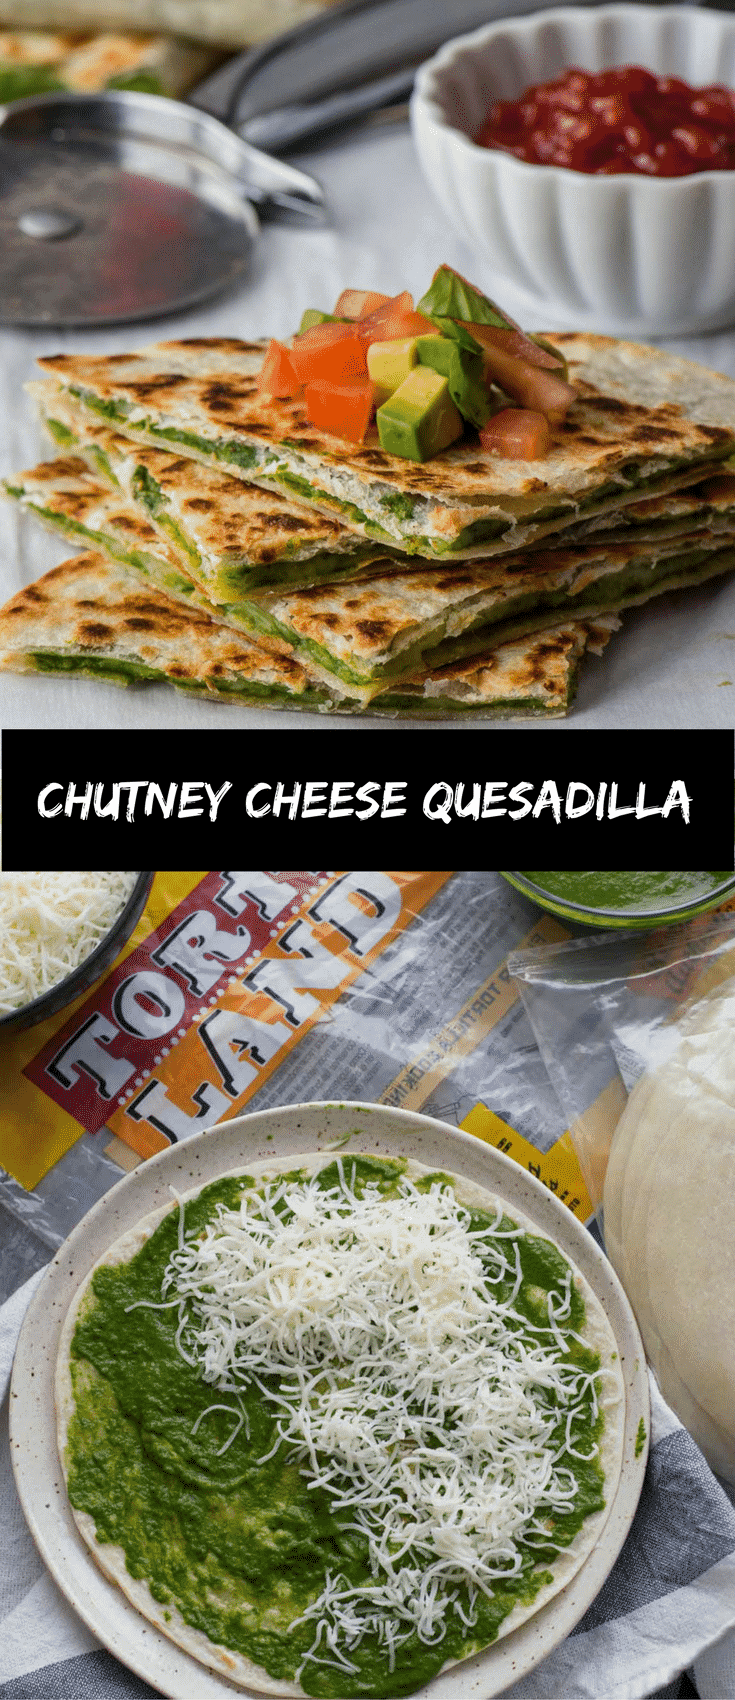 These delicious chutney cheese quesadillas can be put together in a cinch. Makes for a quick and easy after school snack. Grab the TortillaLand tortillas from Costco and these 5-ingredient tortillas are ready in 60 seconds. This is a sponsored post written by me on behalf of Tyson foods. All opinions are entirely my own.